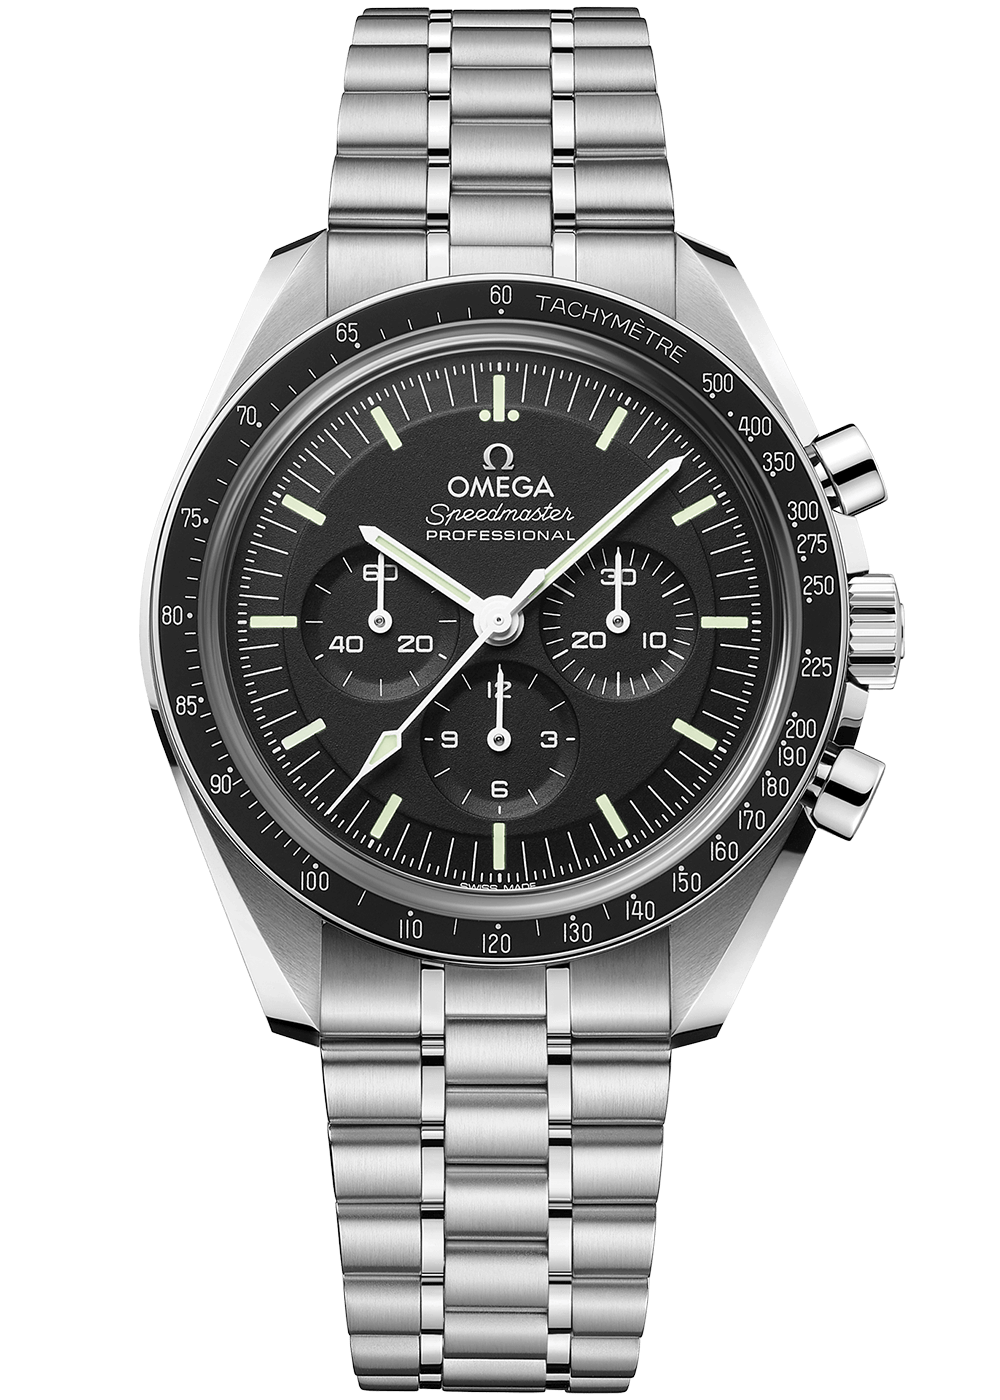 omega-speedmaster-moonwatch-safirglas-metas